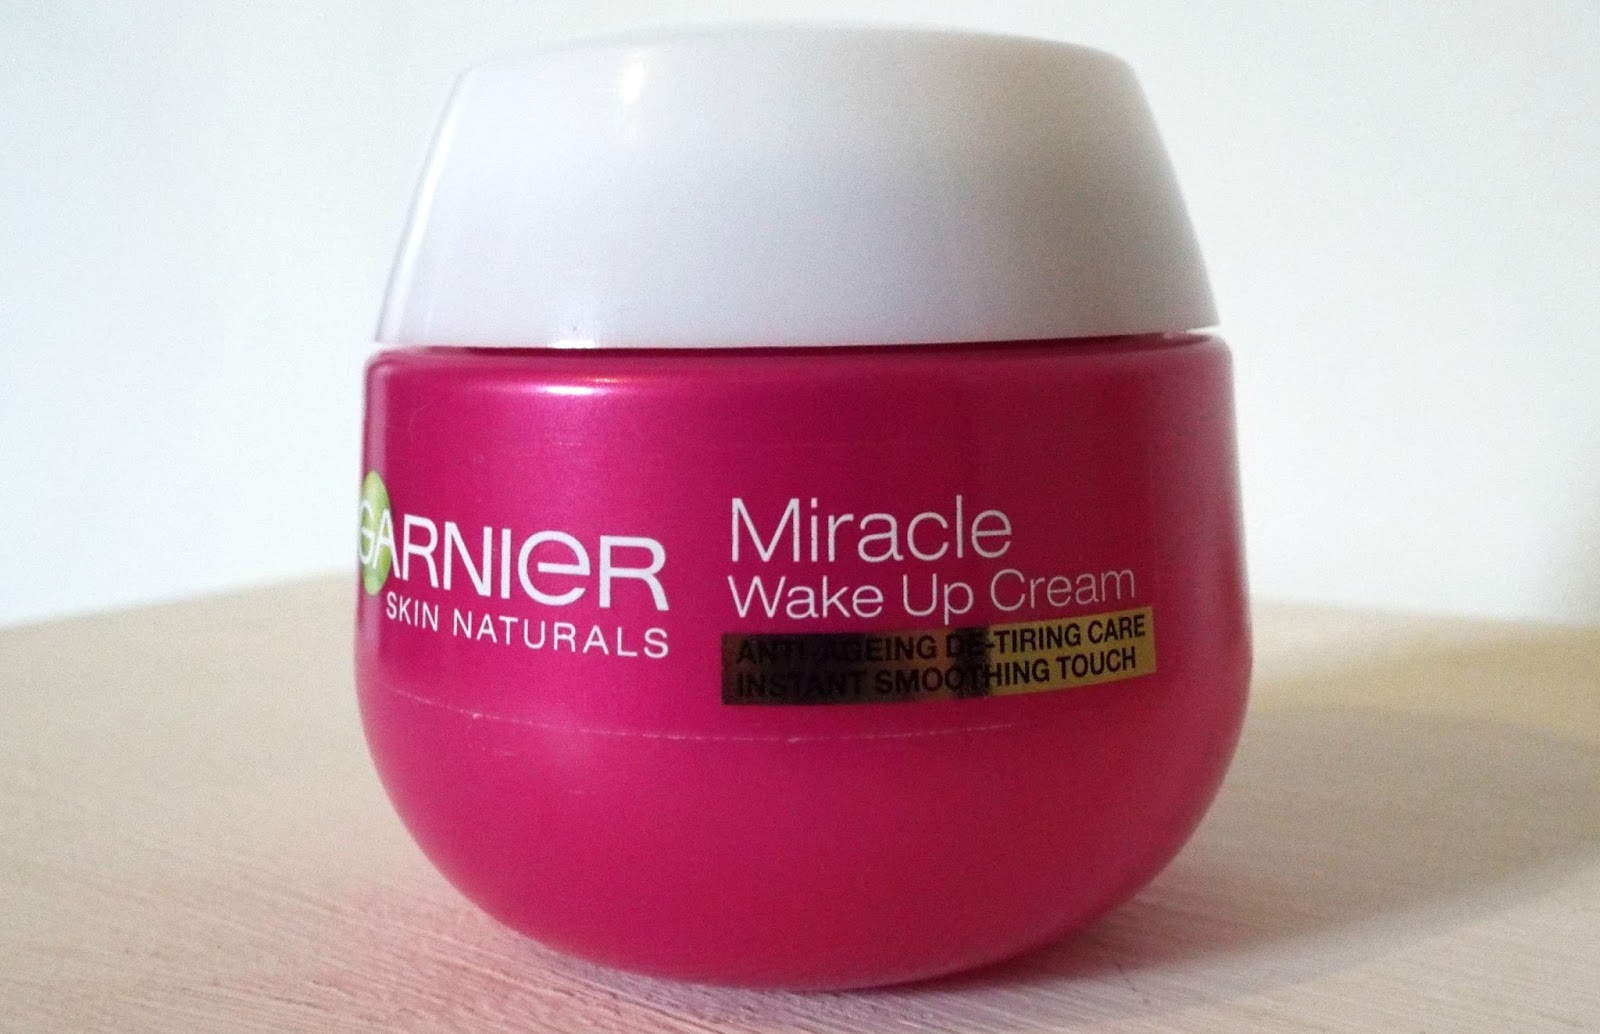 Garnier Miracle Wake Up Cream Review